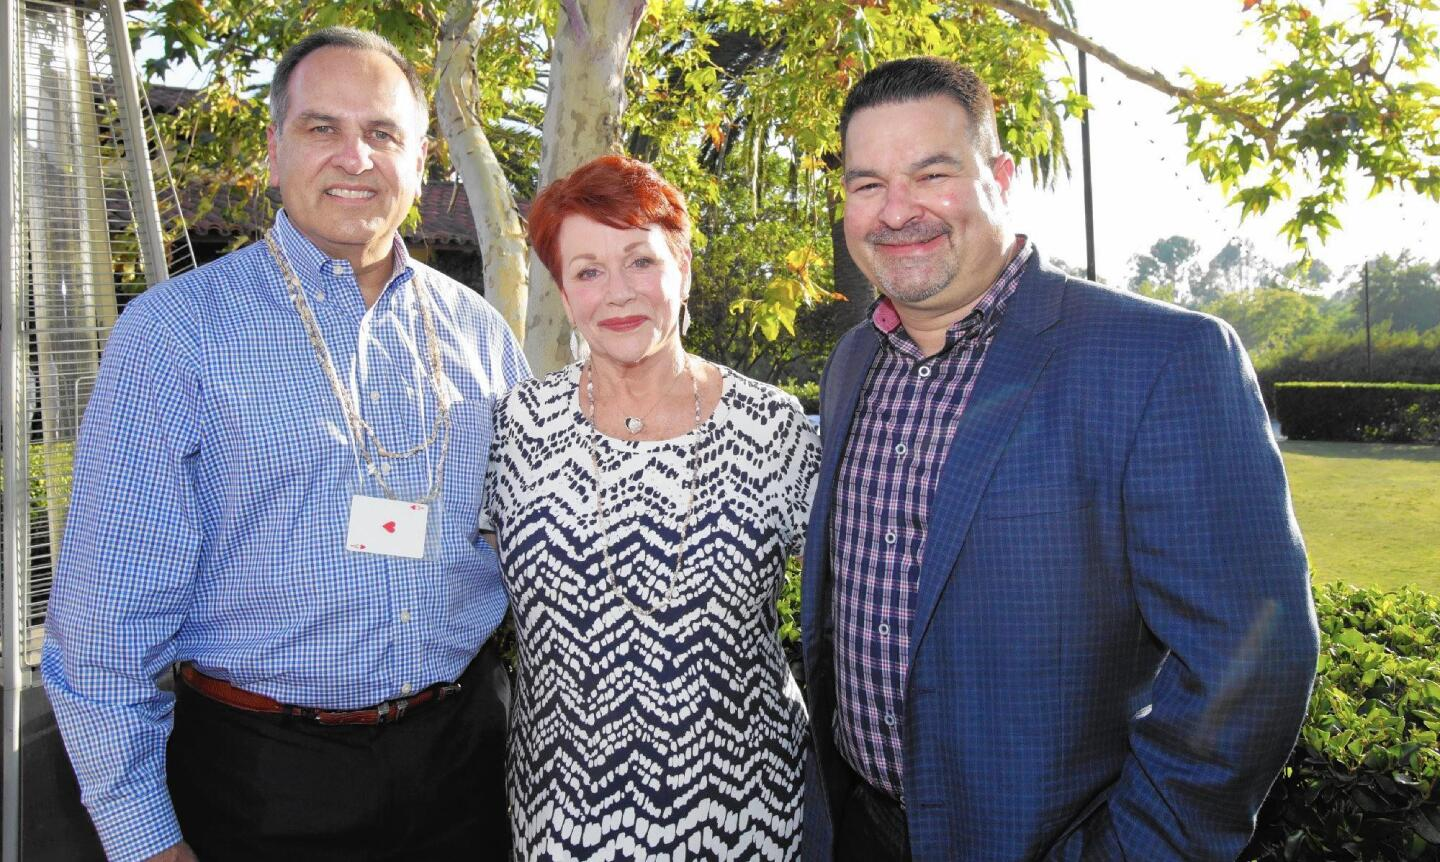 Alex Morales, honored guests Peggy Goldwater Clay and Kevin Prewett at 2016 Summer Clambake for Children's Bureau OC.